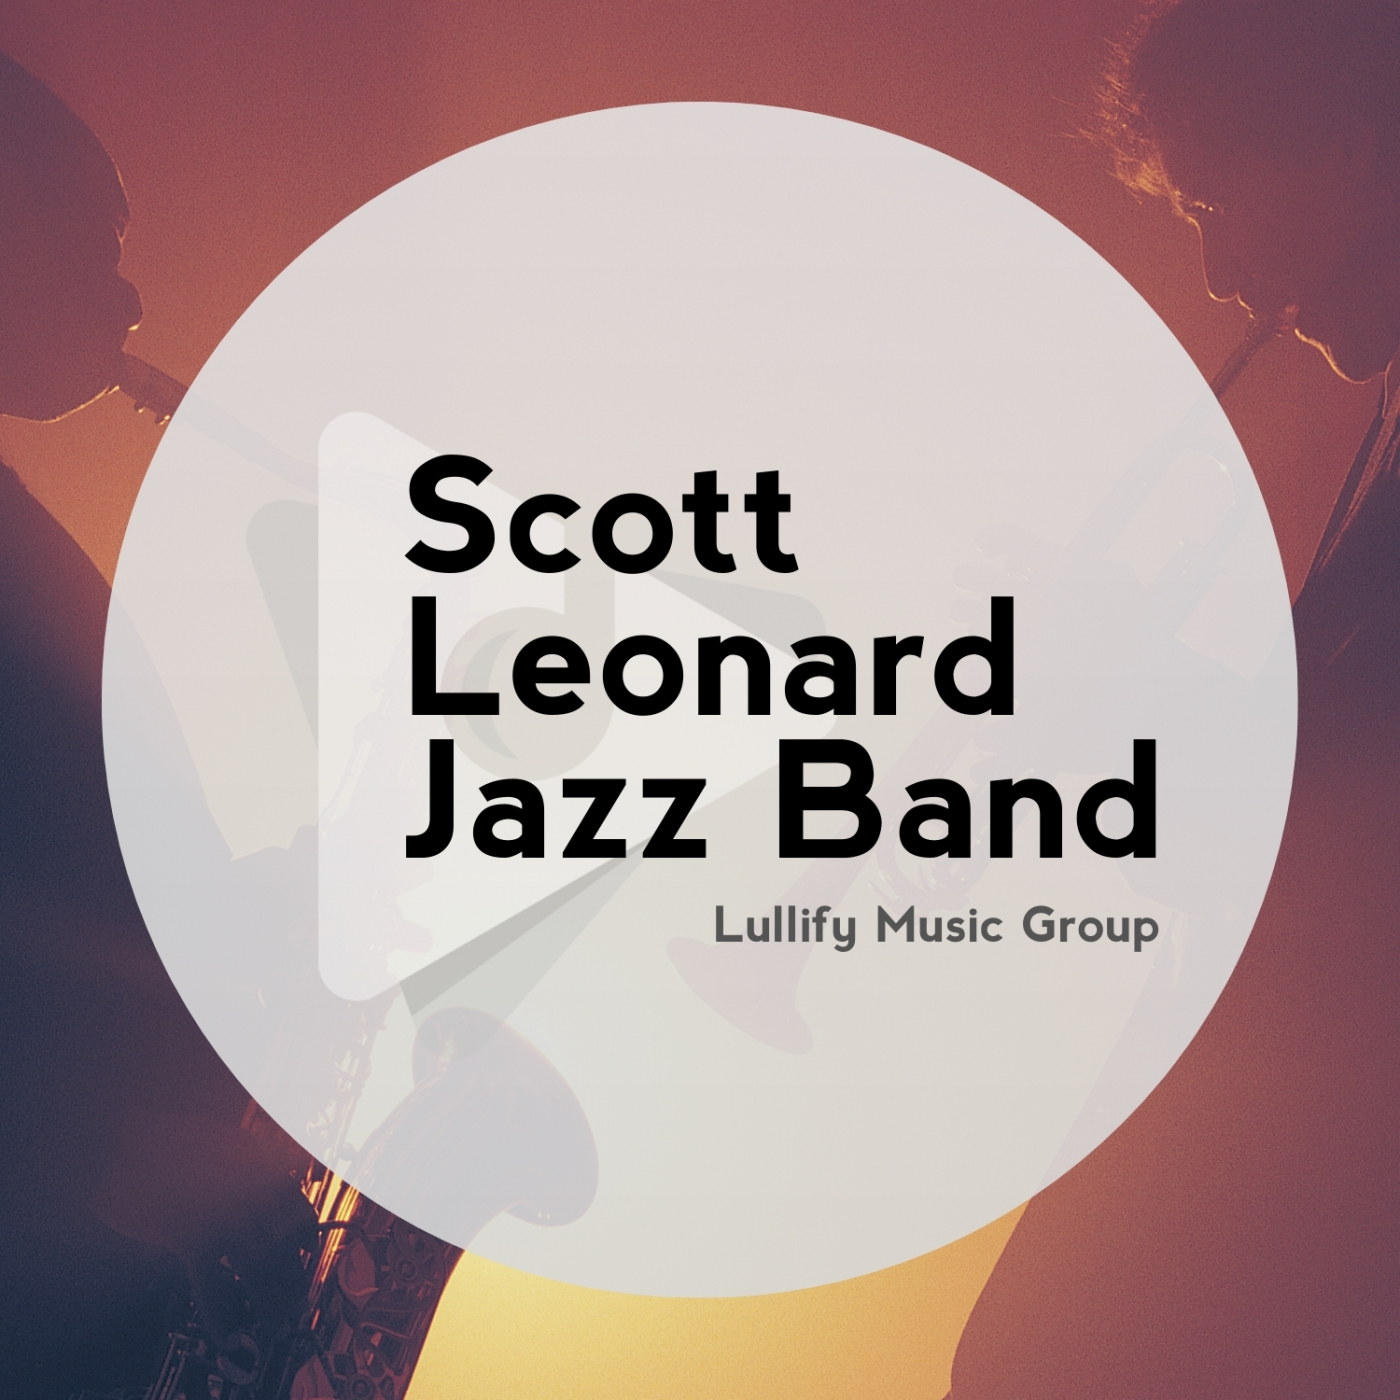 Scott Leonard Jazz Band